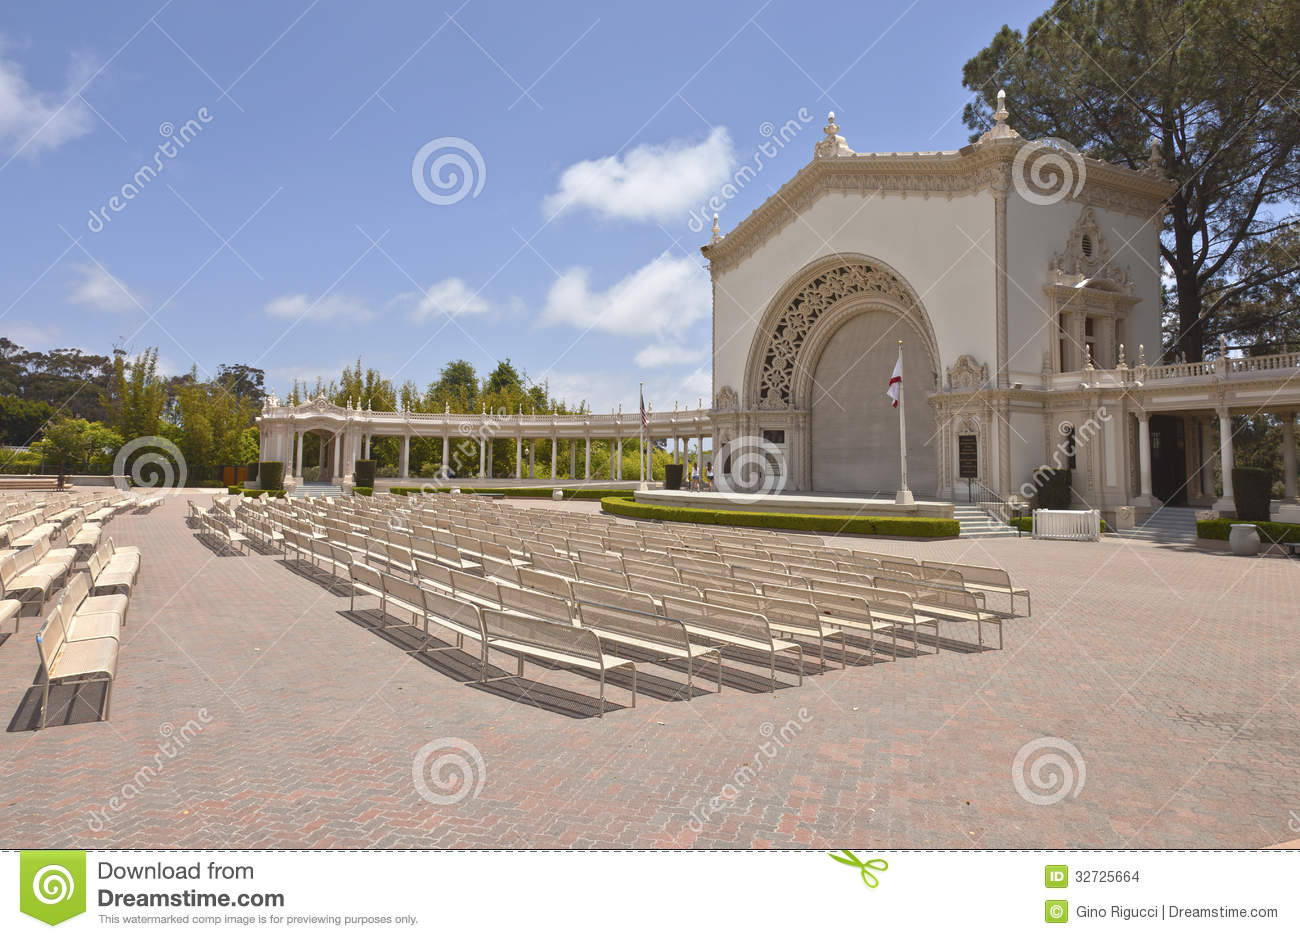 Balboa Park Outdoor Concert And Theater California. Stock Images.